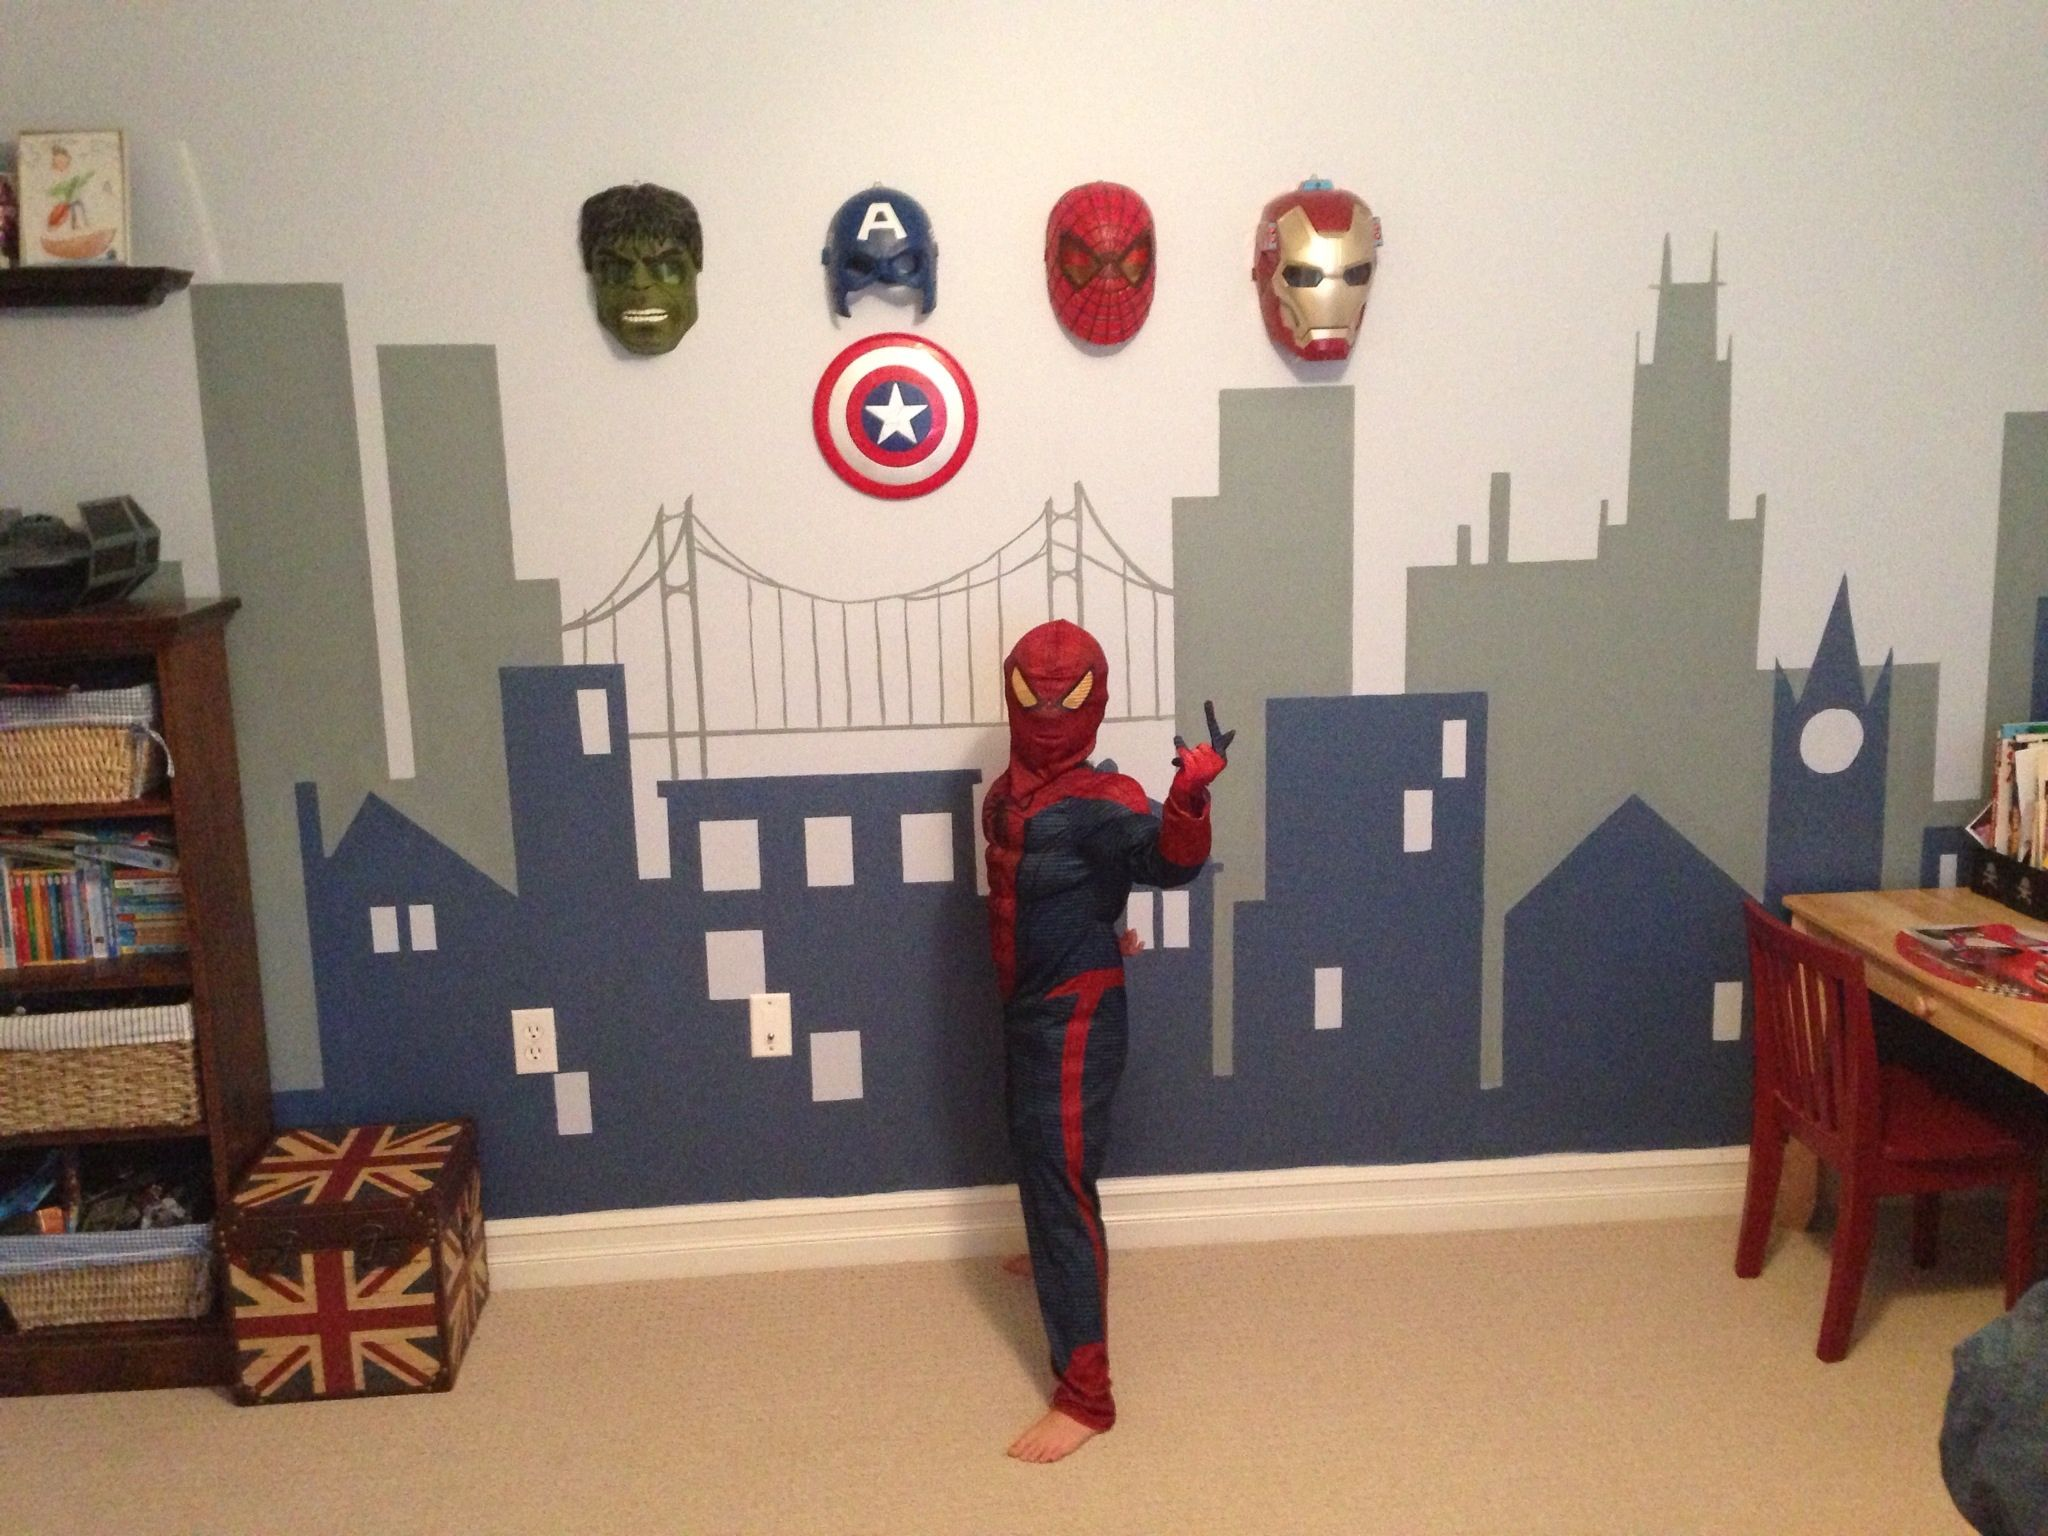 Superhero bedroom - Find This Pin And More On Superhero Bedroom